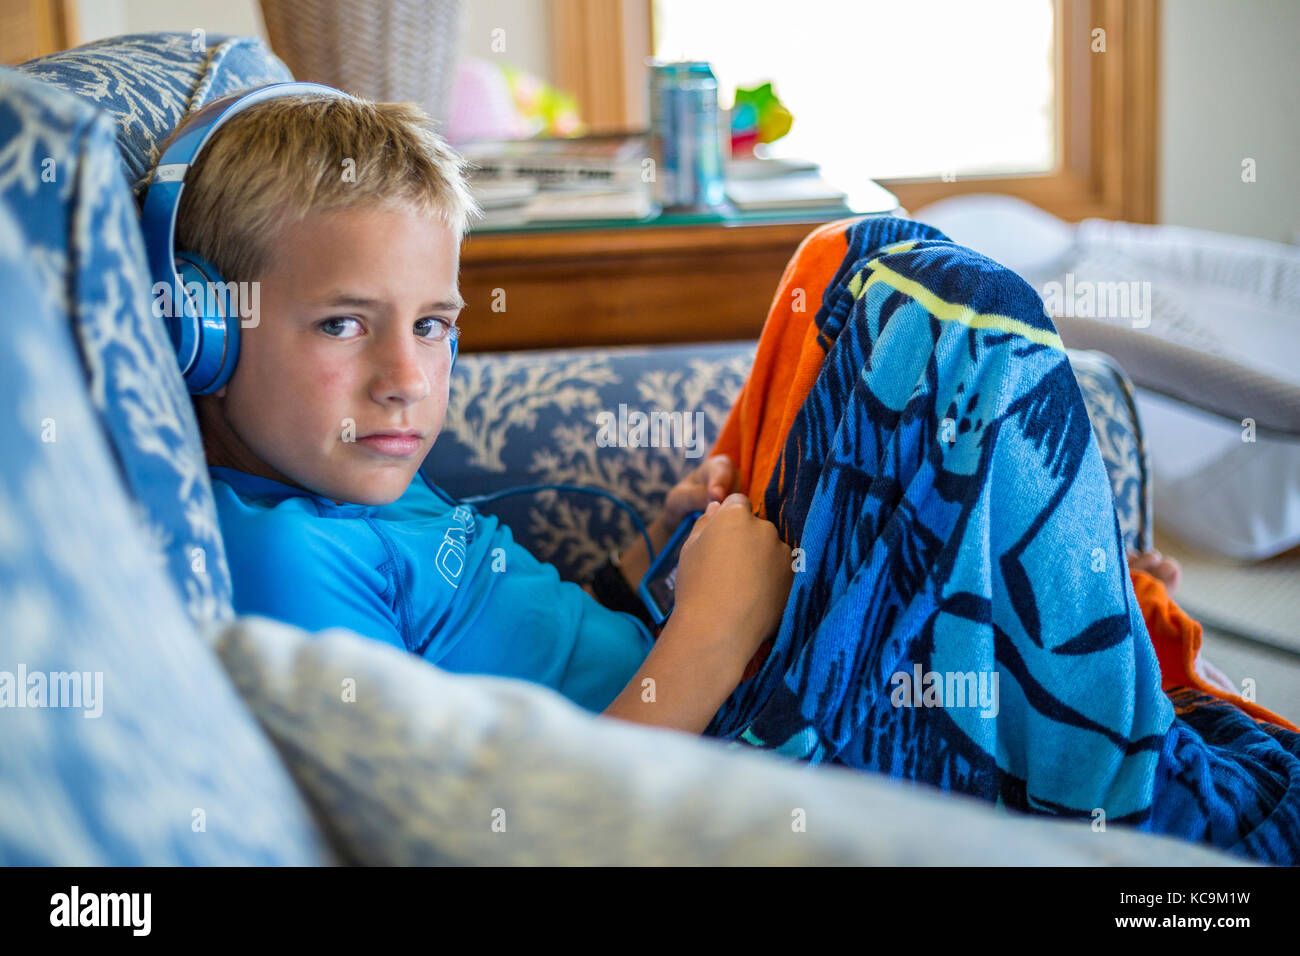 Avon, Outer Banks, North Carolina, USA.  Young American Boy with his Mobile Gaming Device. - Stock Image